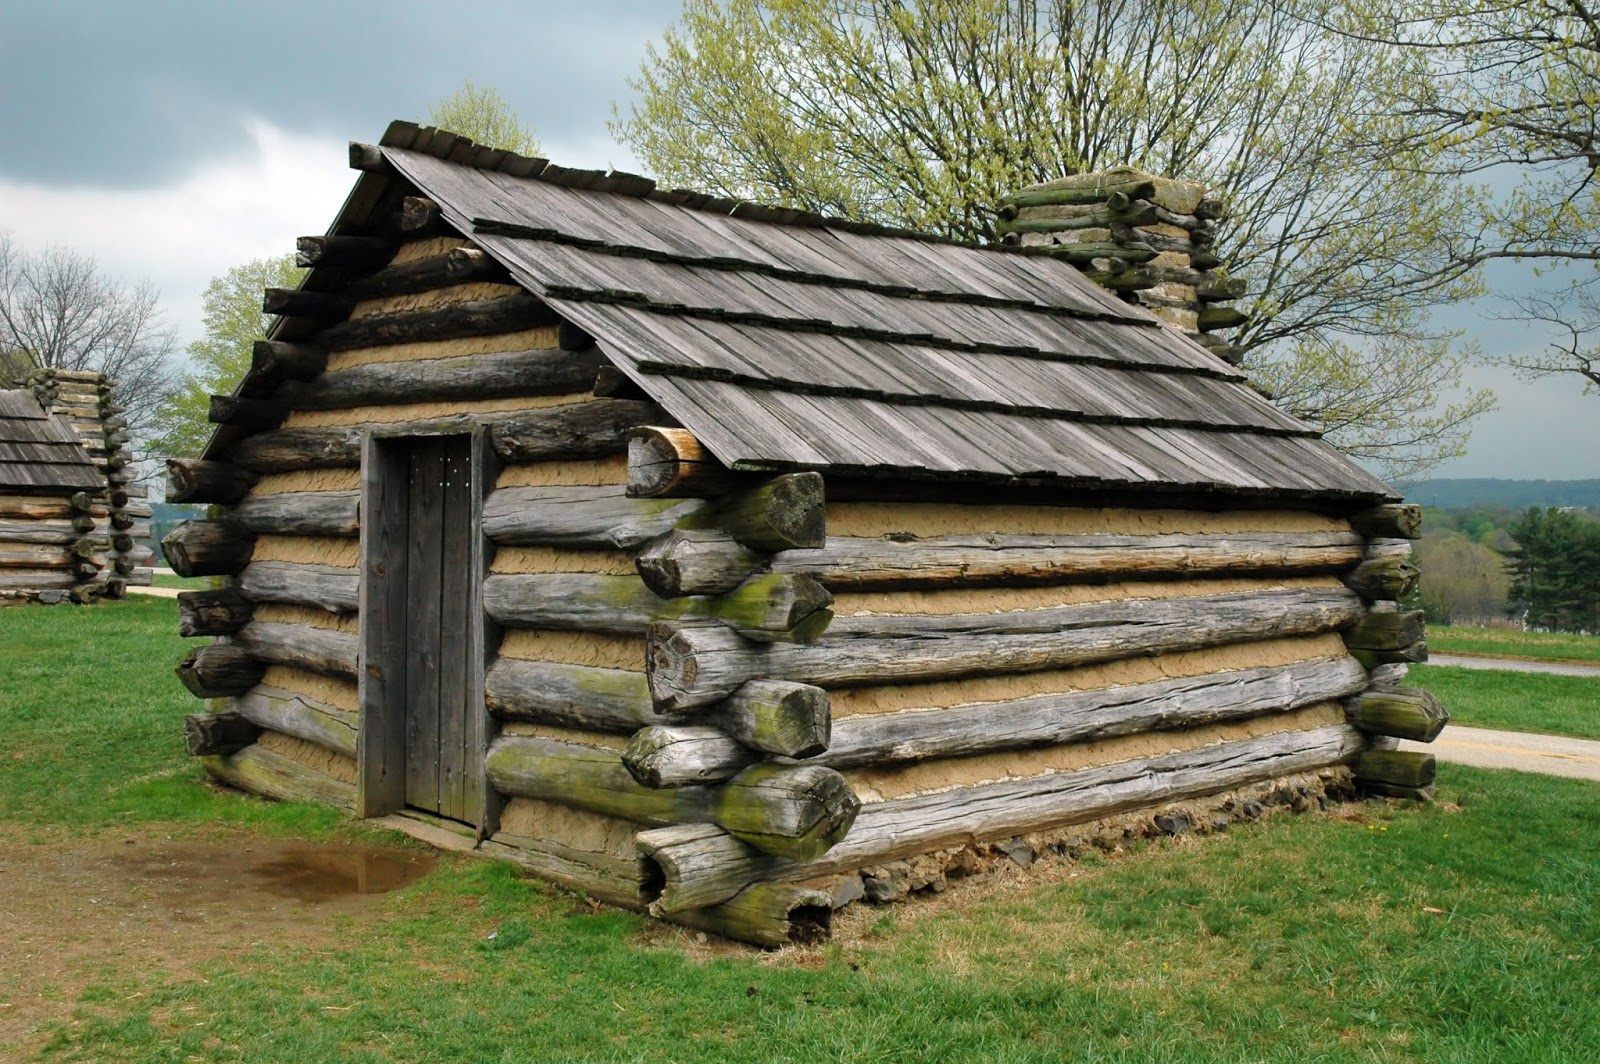 But What If I Told You That Log Cabins Were A Late Cultural Import Into Scandinavia From The Slavic Lands South And East Of Baltic Sea